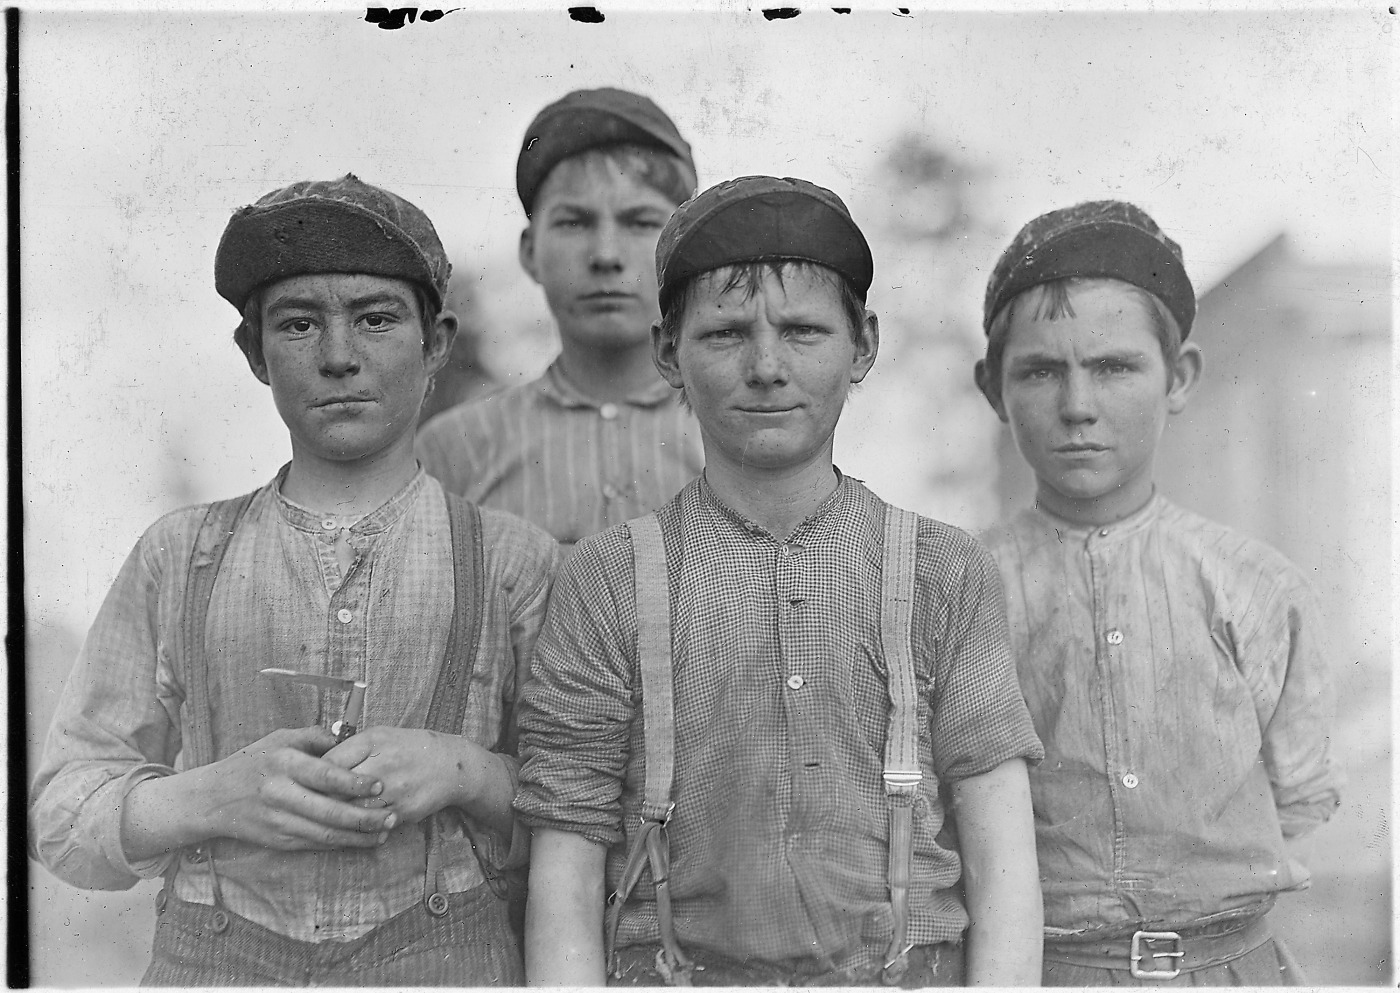 Doffer boys, Jan 1909. Public domain photo by Lewis Hine.